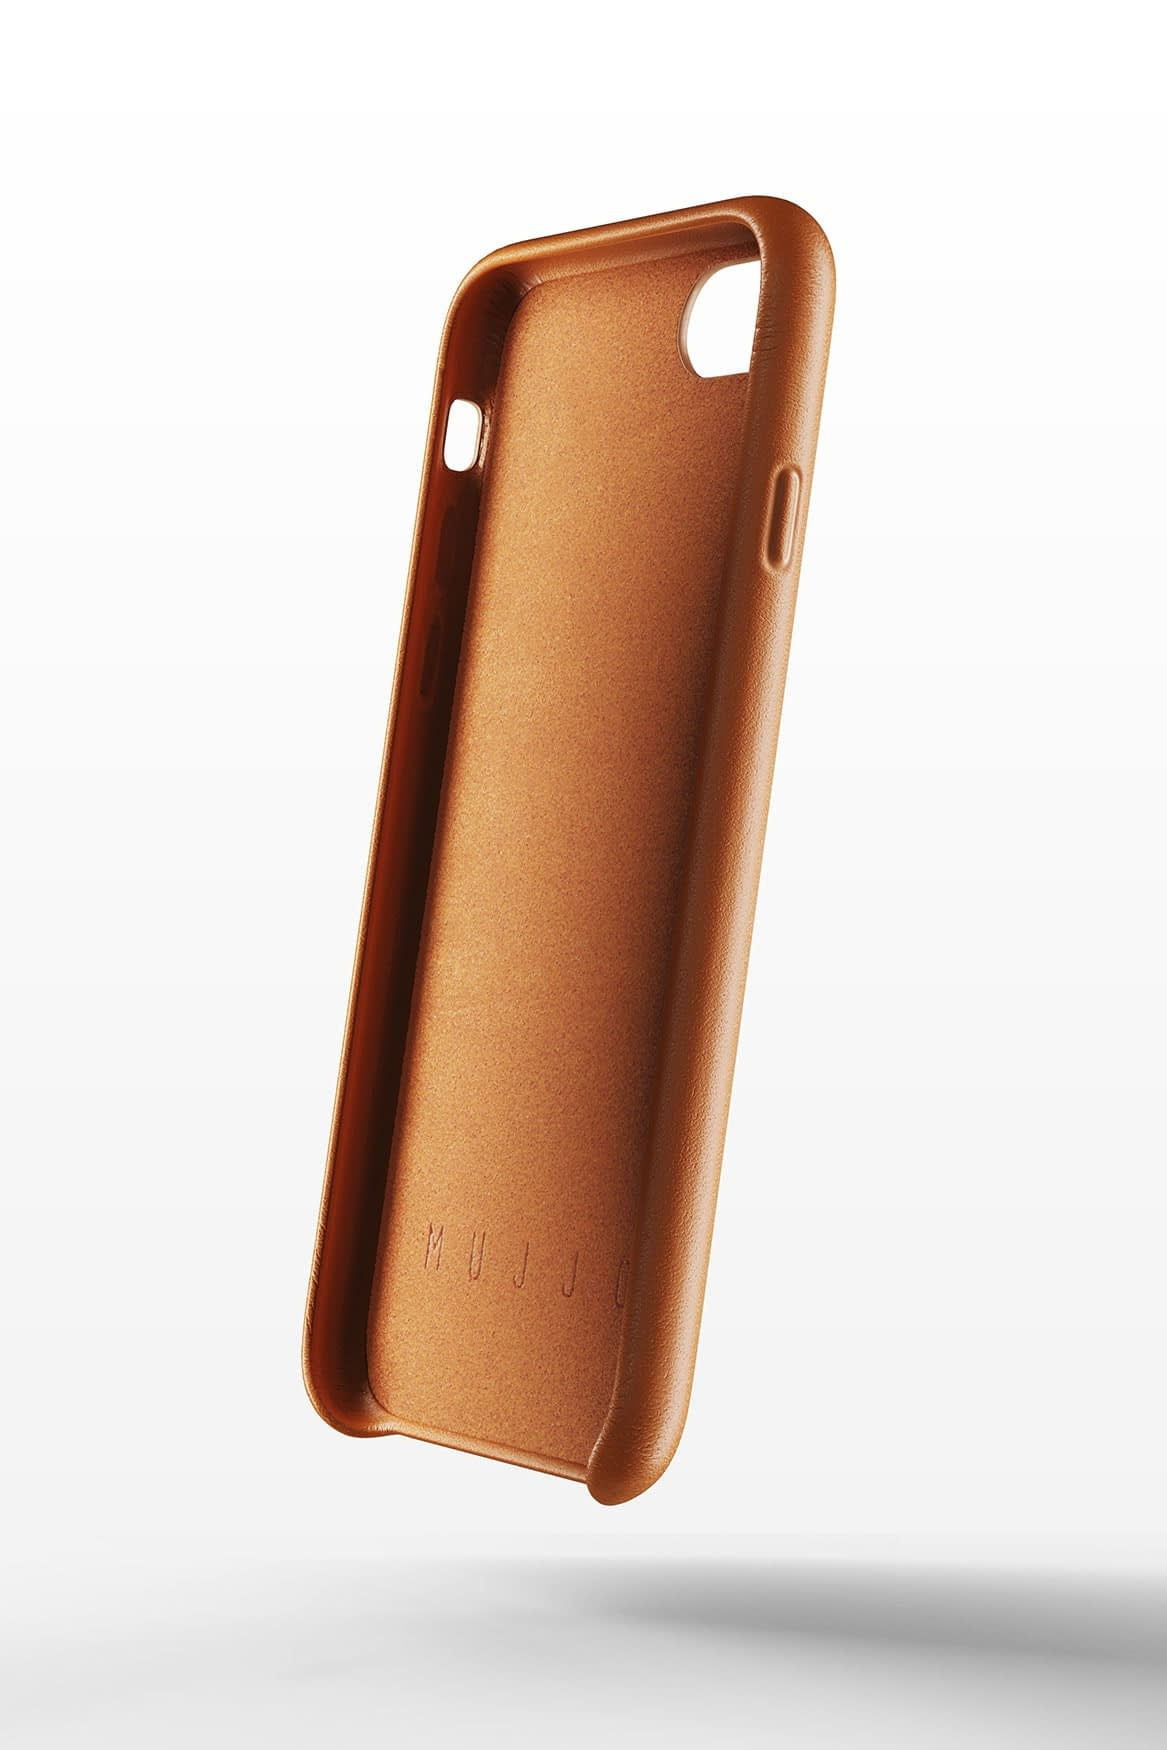 Full leather wallet case for iPhone 8 Tan 02